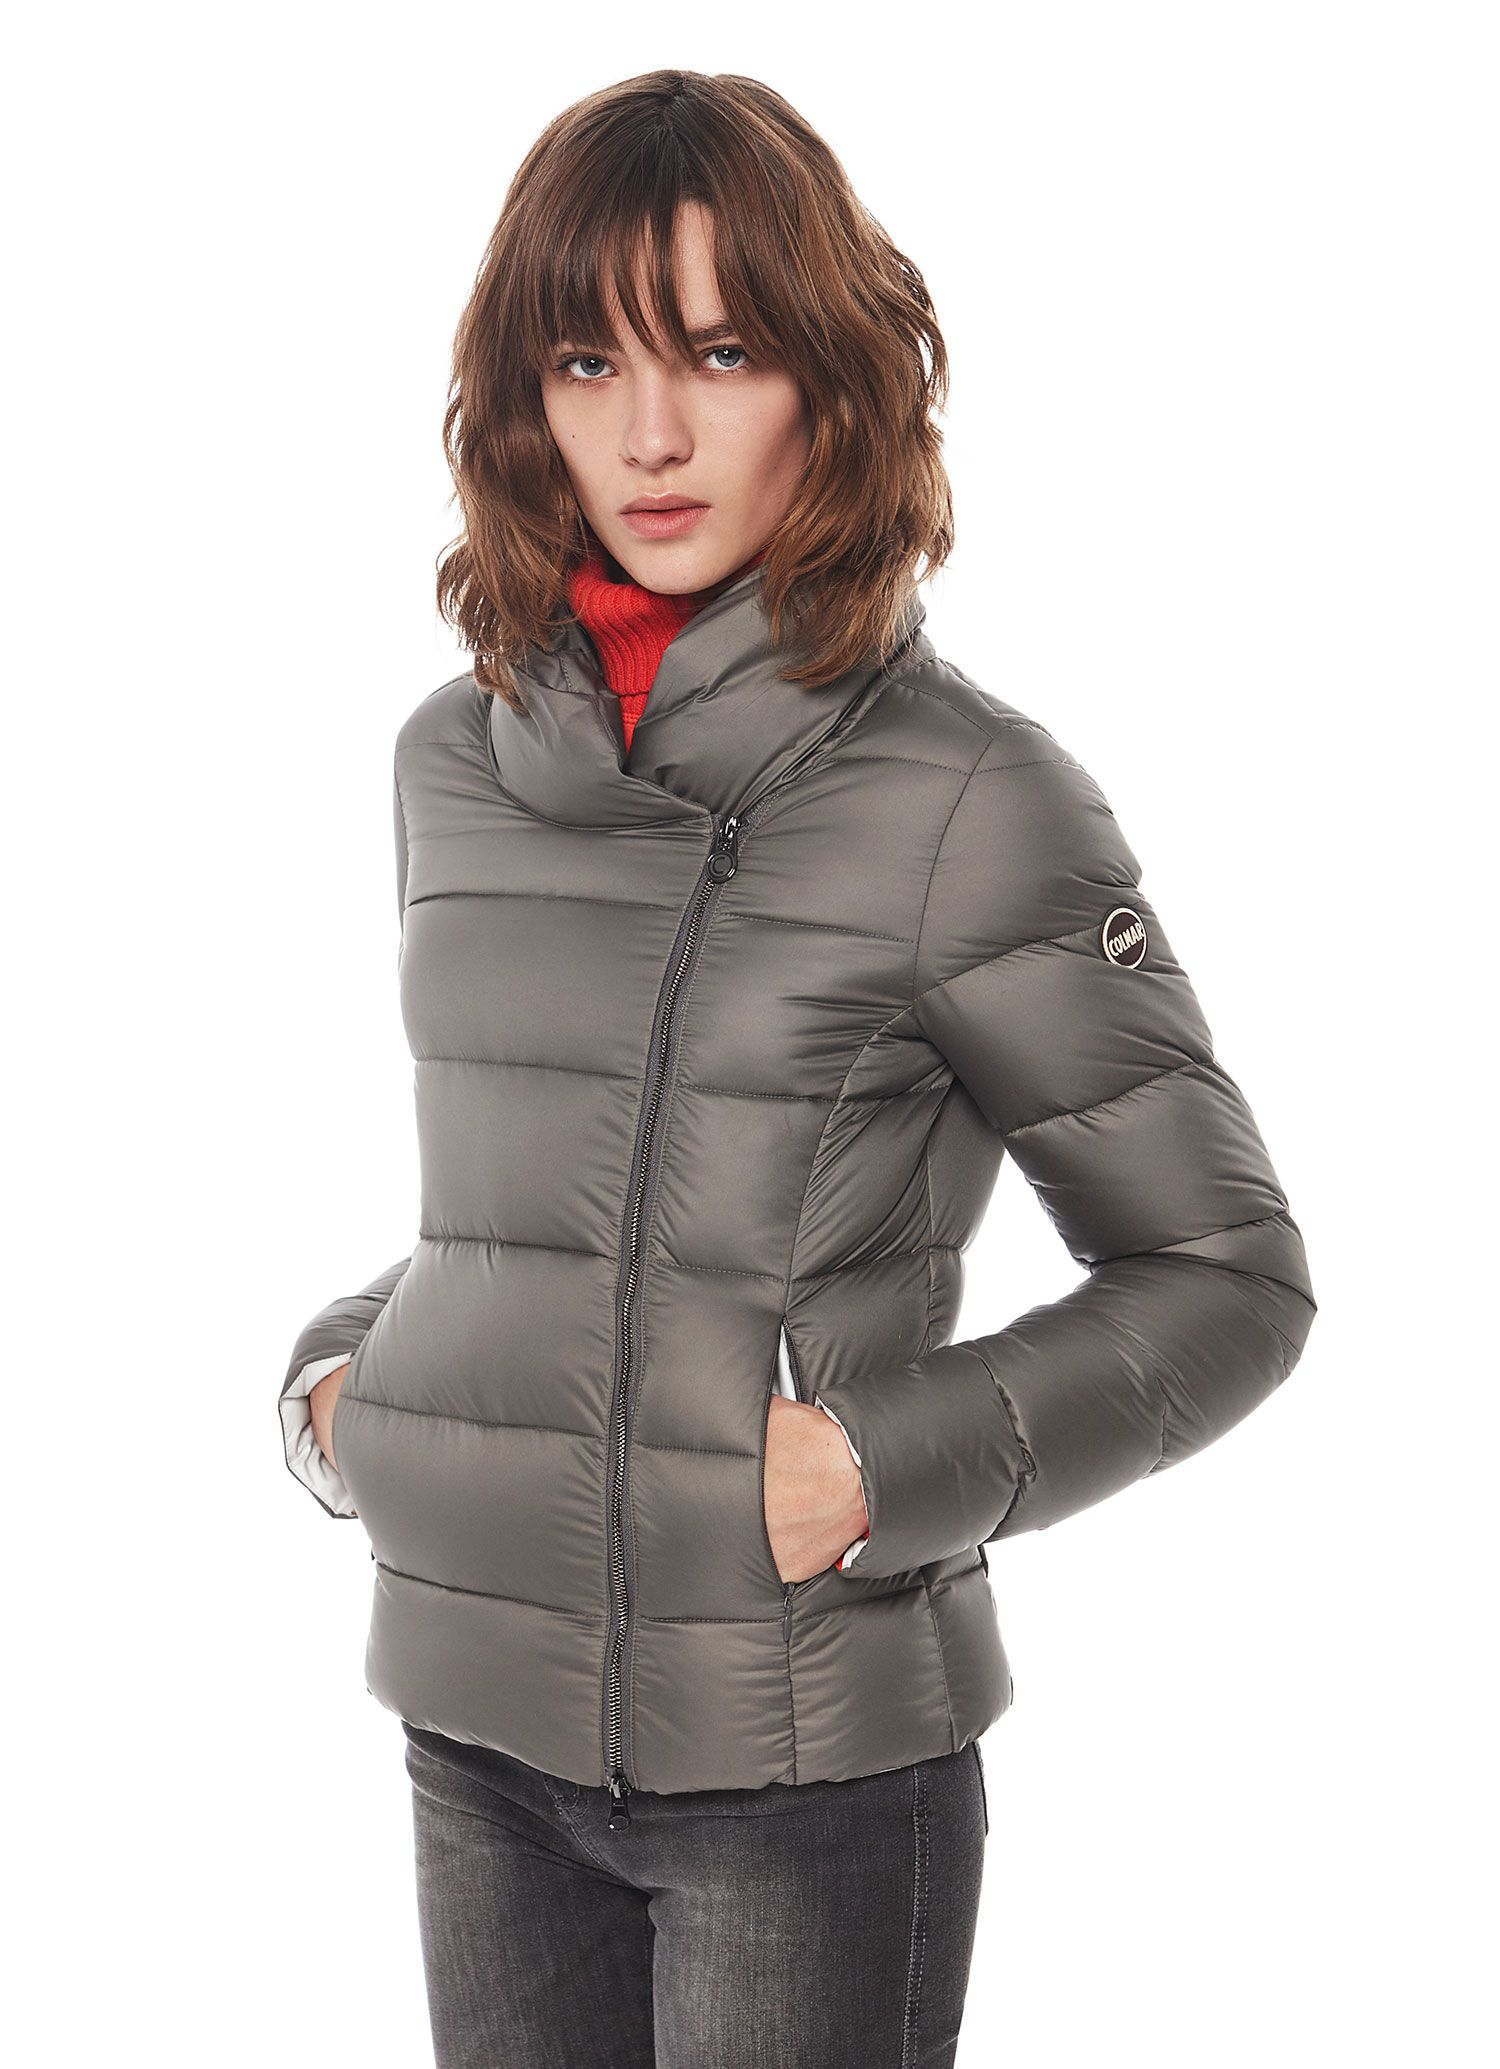 Colmar Originals women's jacket with a soft, shawl neck and double ...